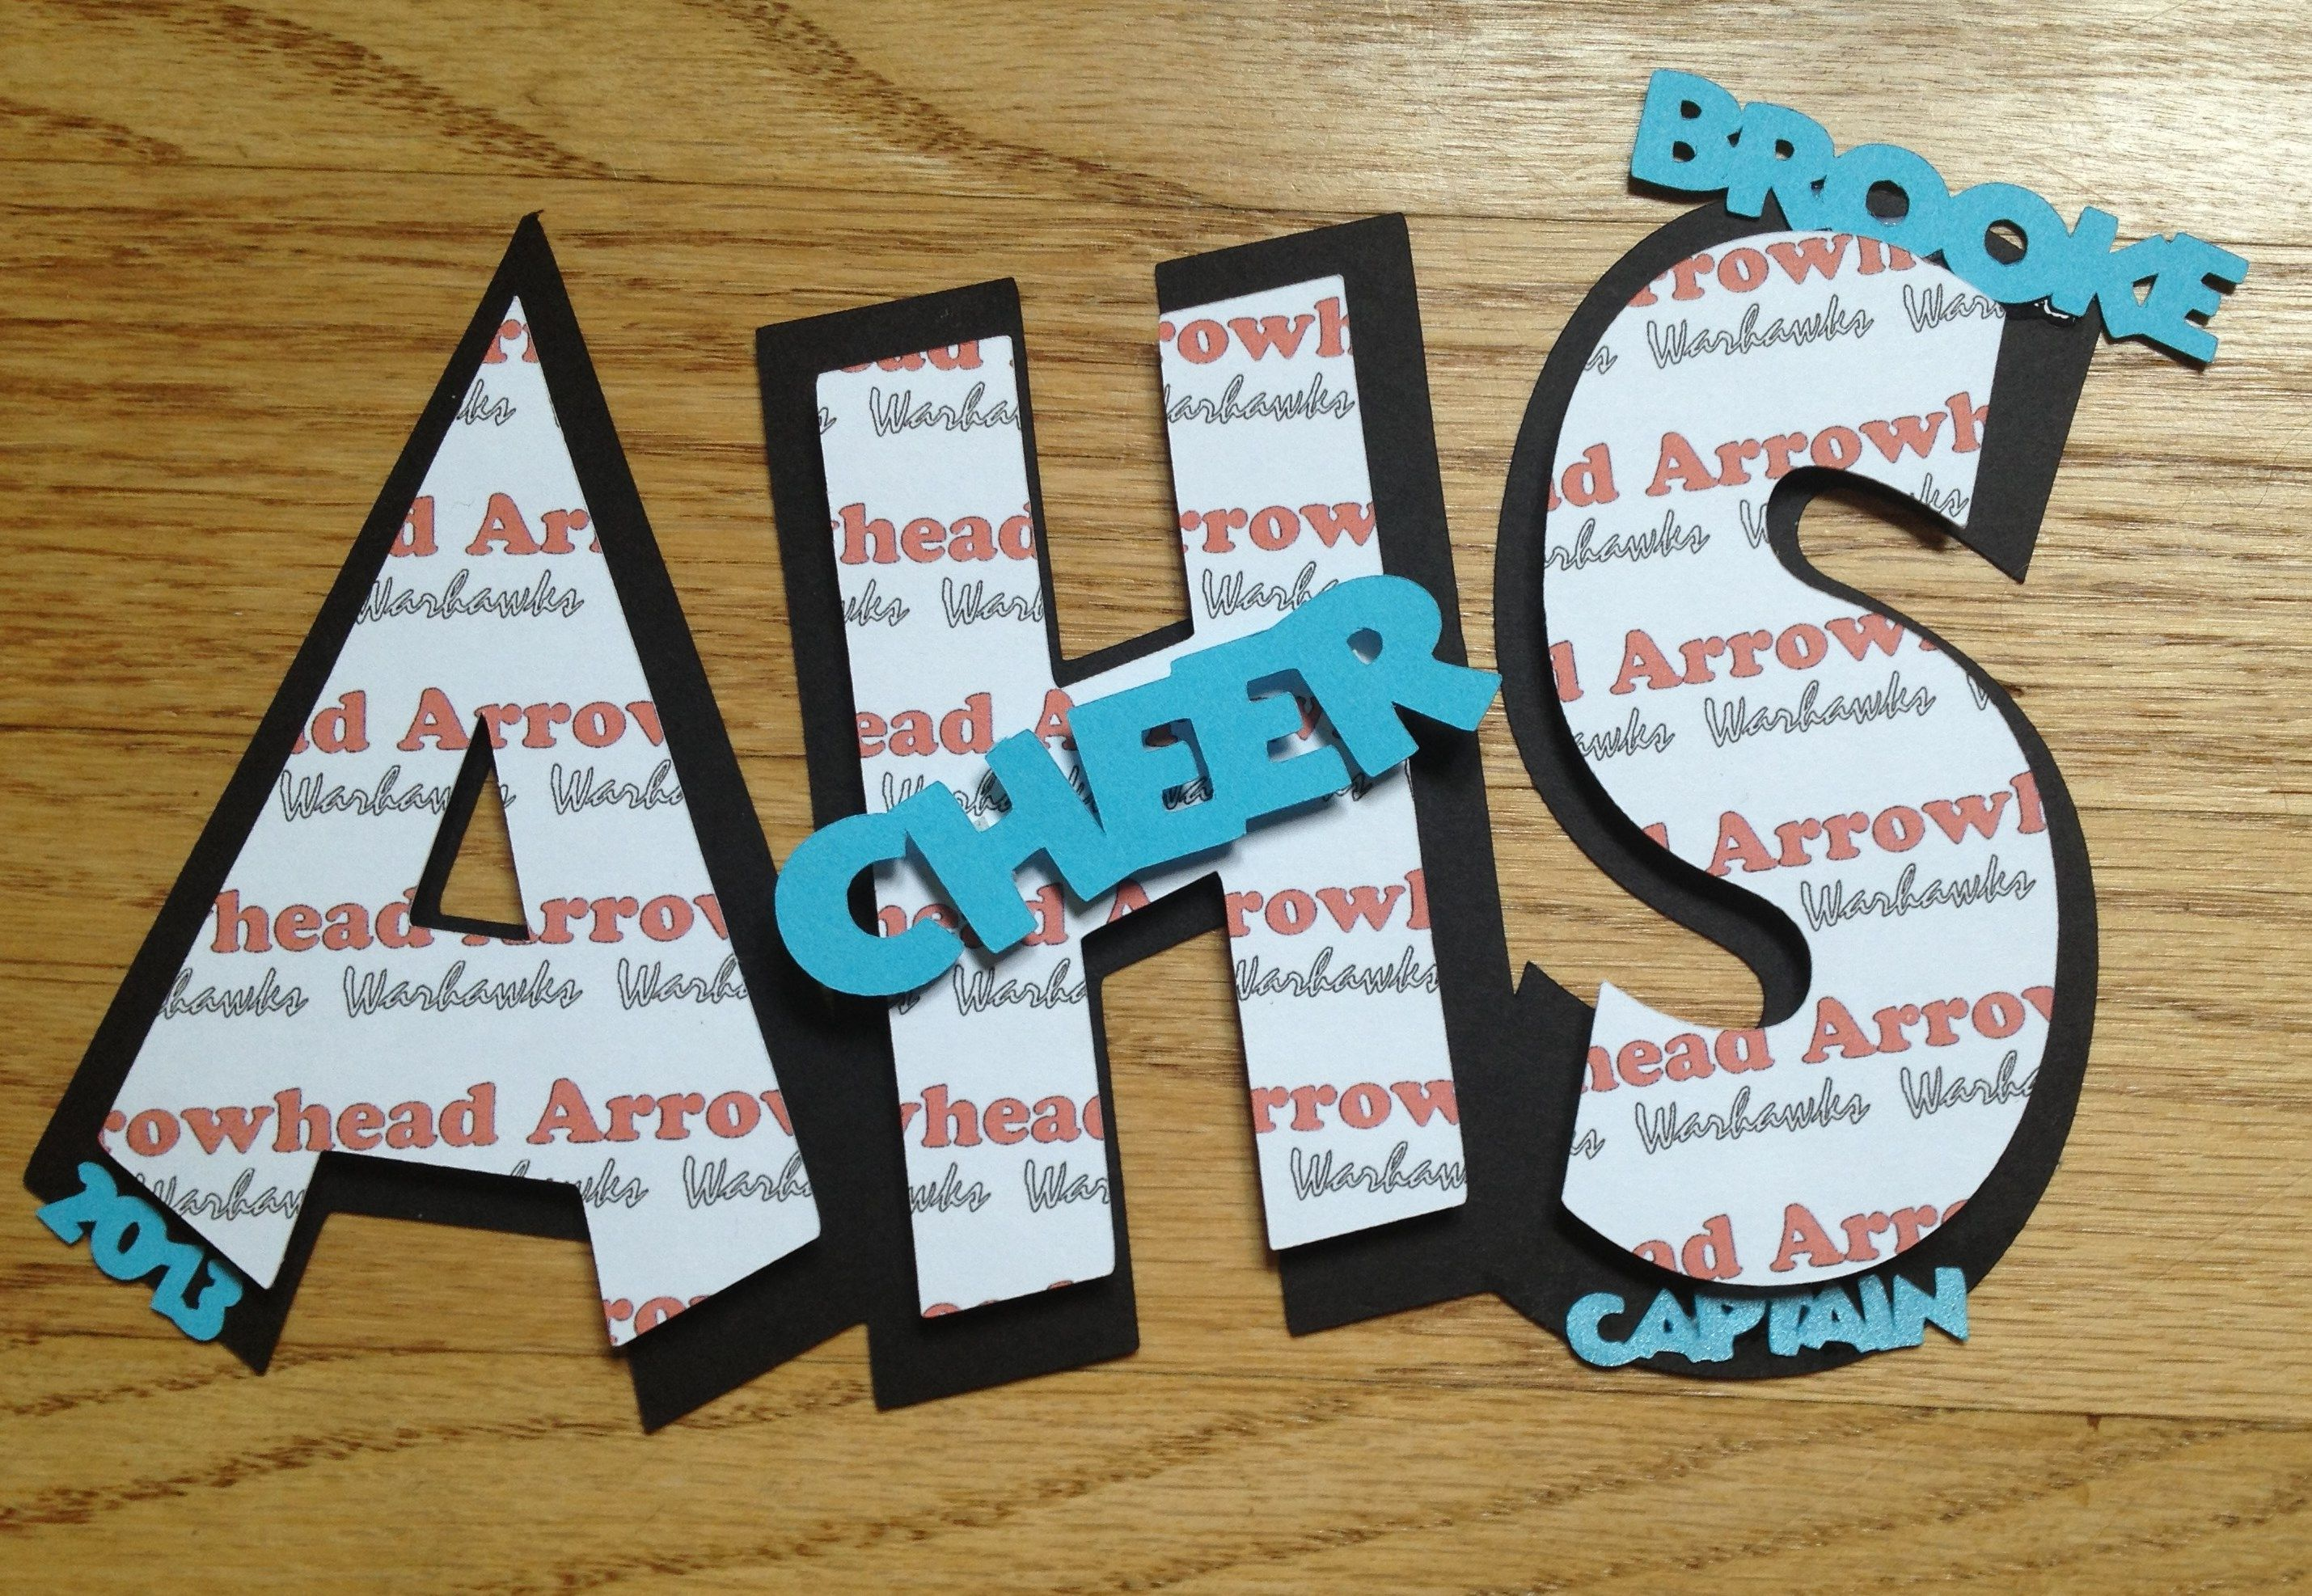 cheer locker decoration cheering pinterest